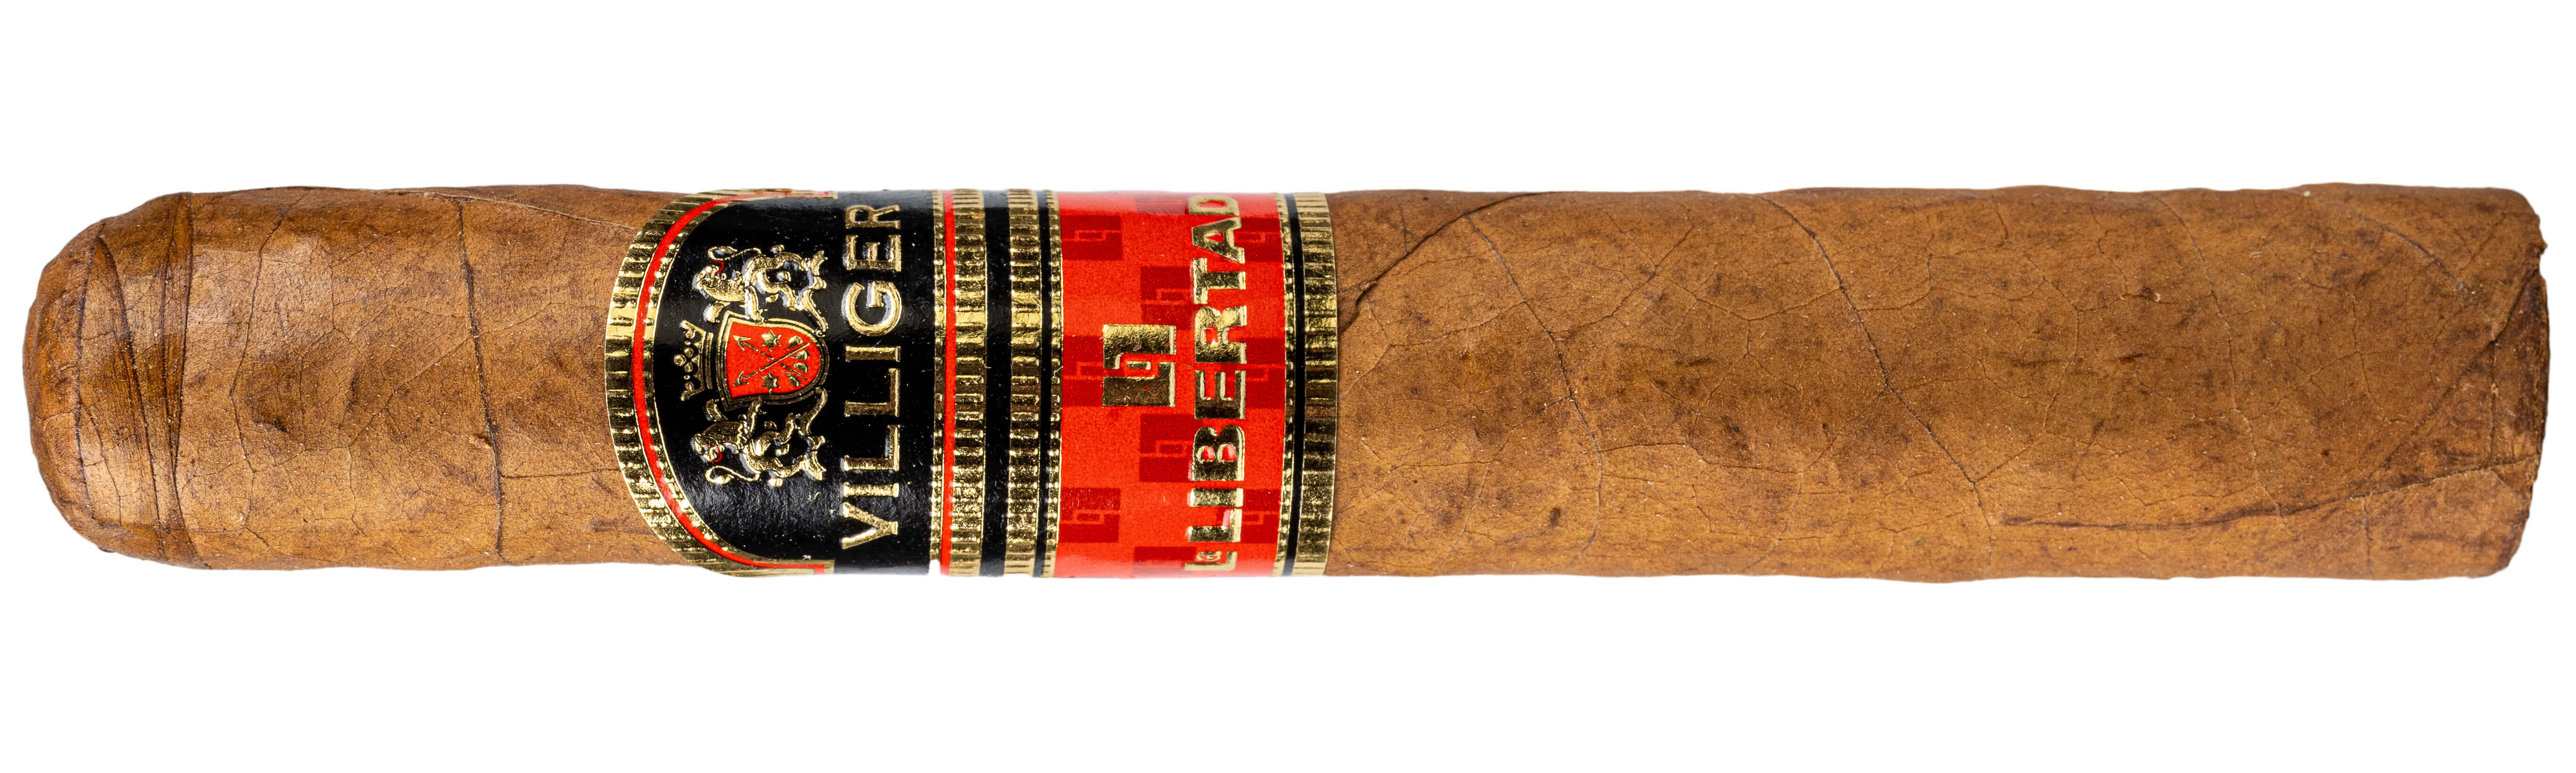 Blind Cigar Review: Villiger | La Libertad Robusto